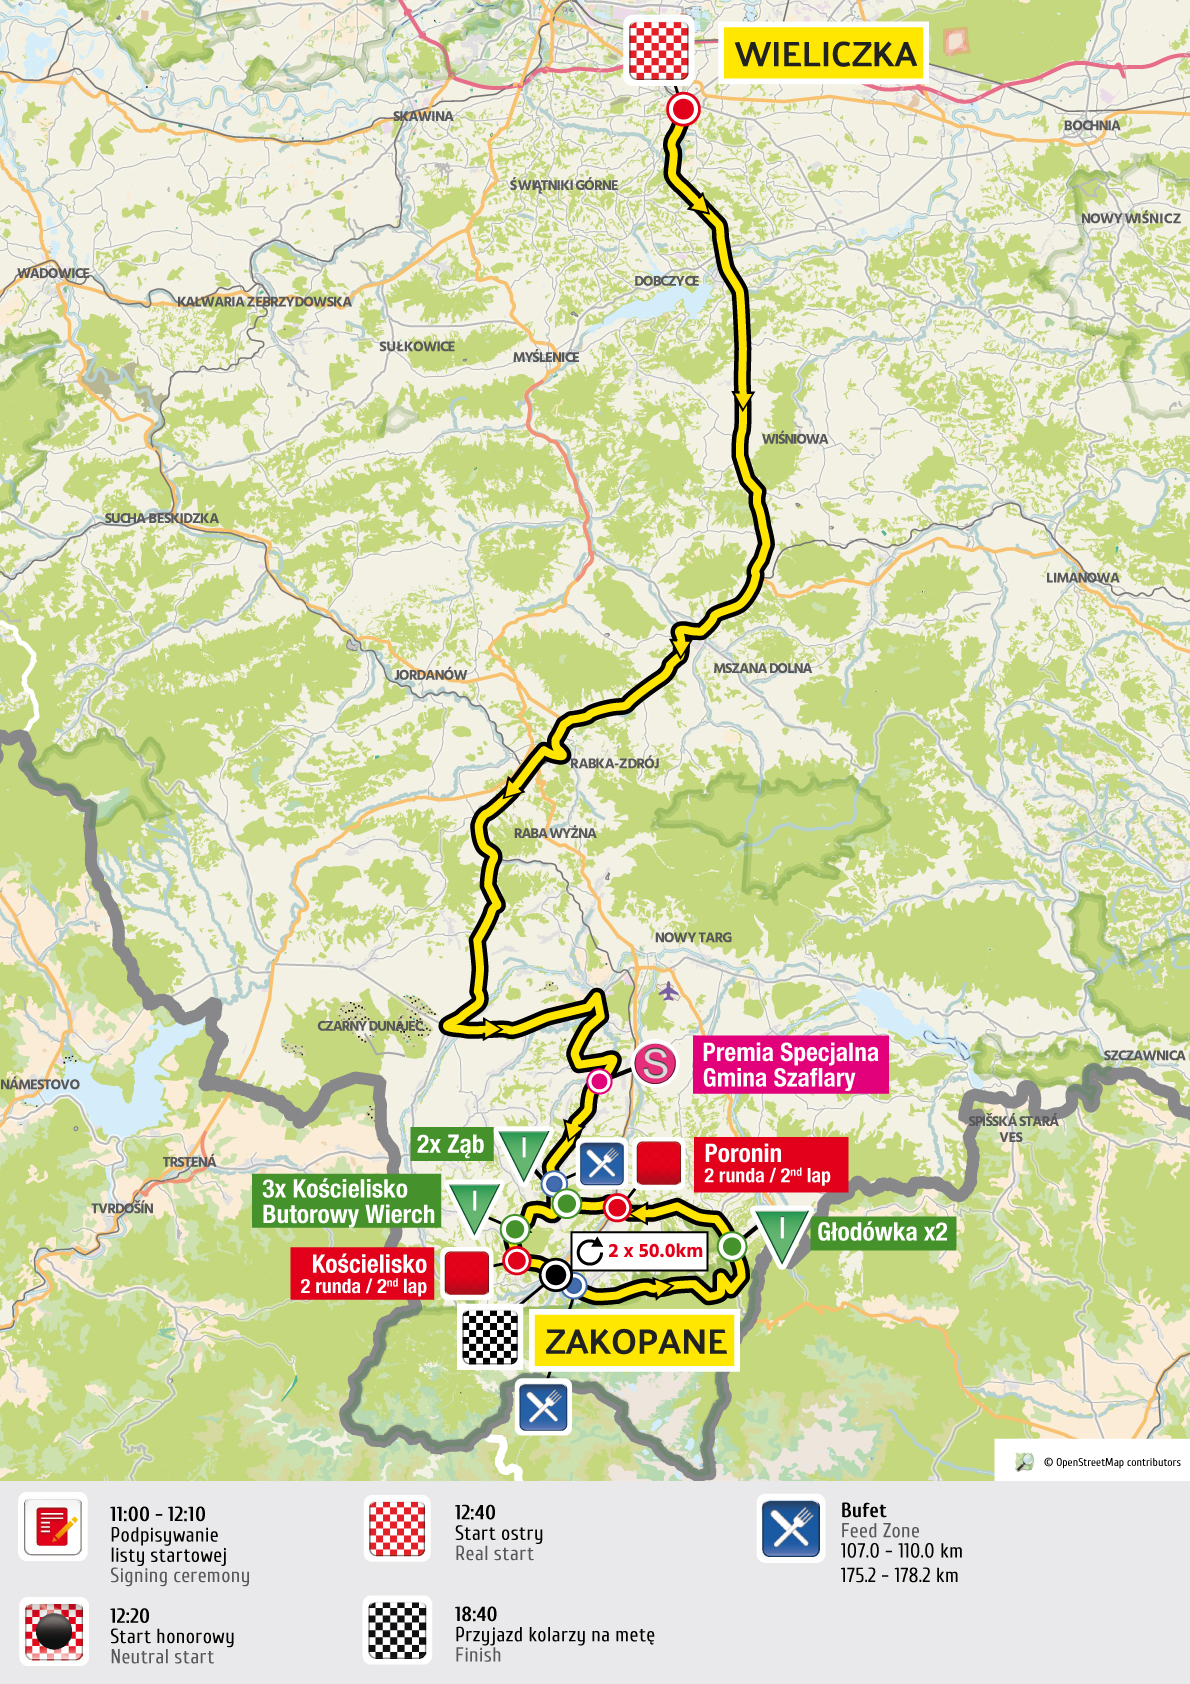 etap 5 mapa Tour de Pologne 2016 UCI World Tour